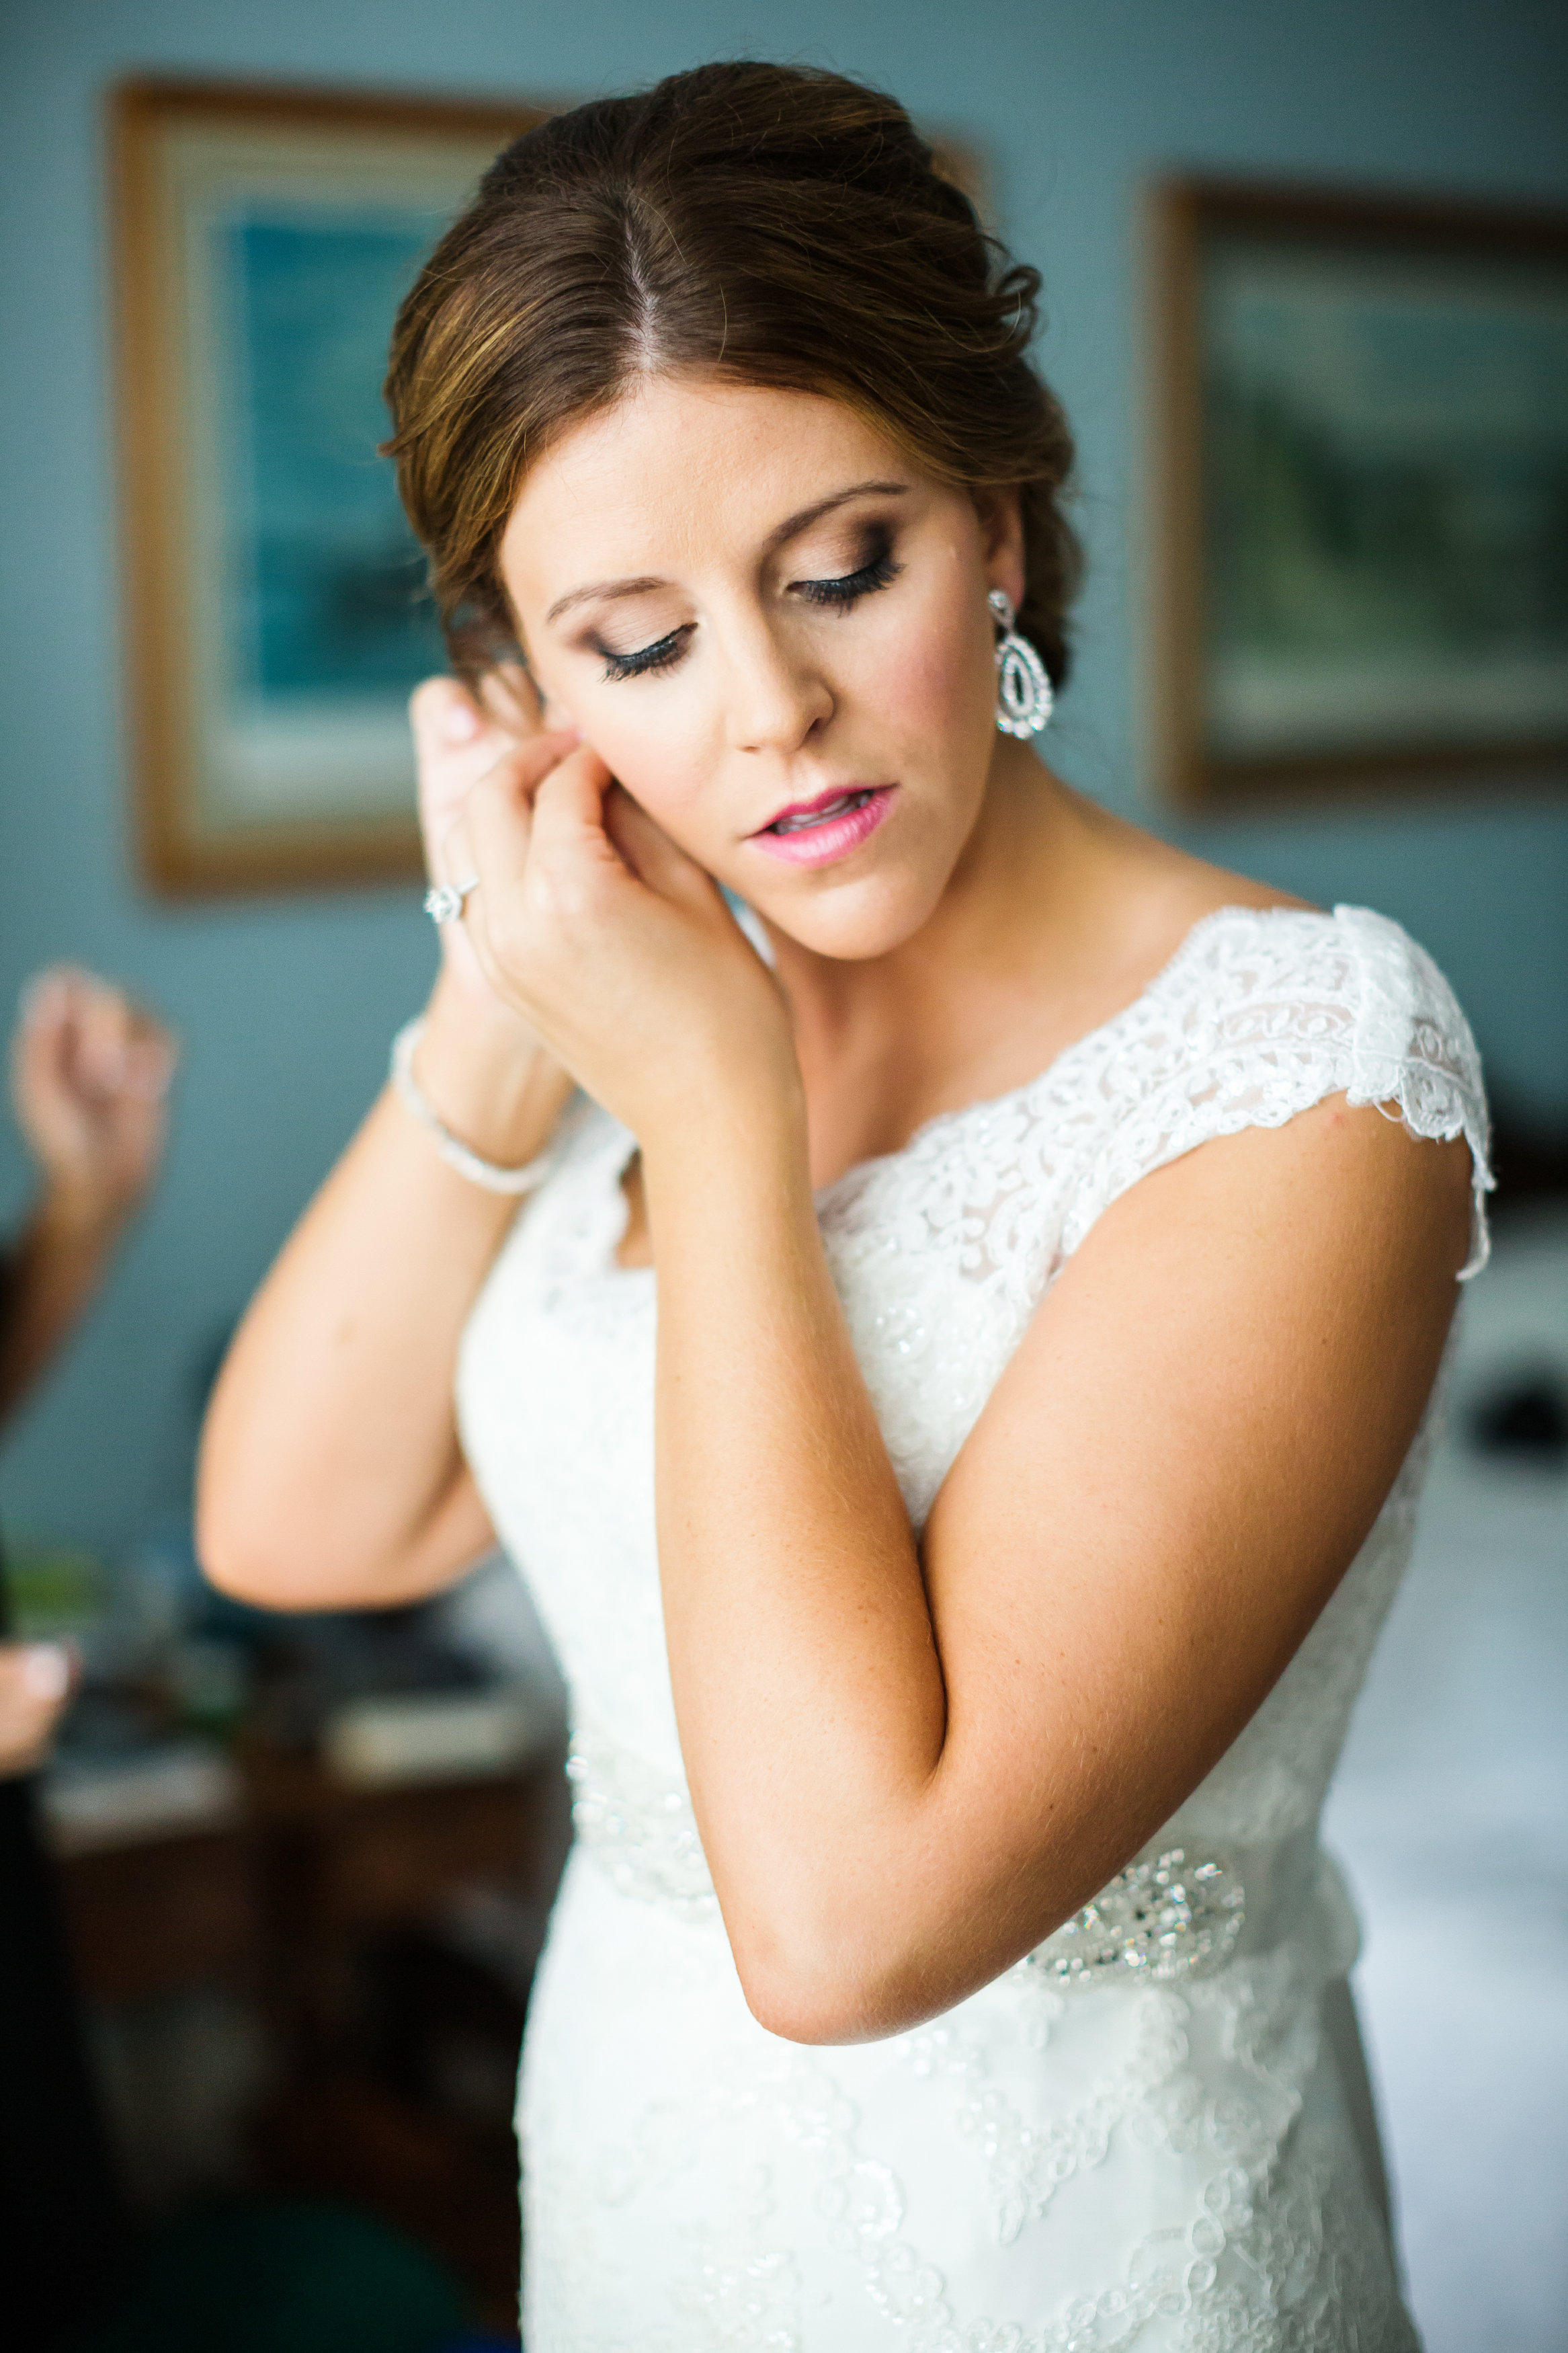 Bride Getting Ready in University City Missouri Wedding Day Photos by Oldani Photography St. Louis Wedding Photographers